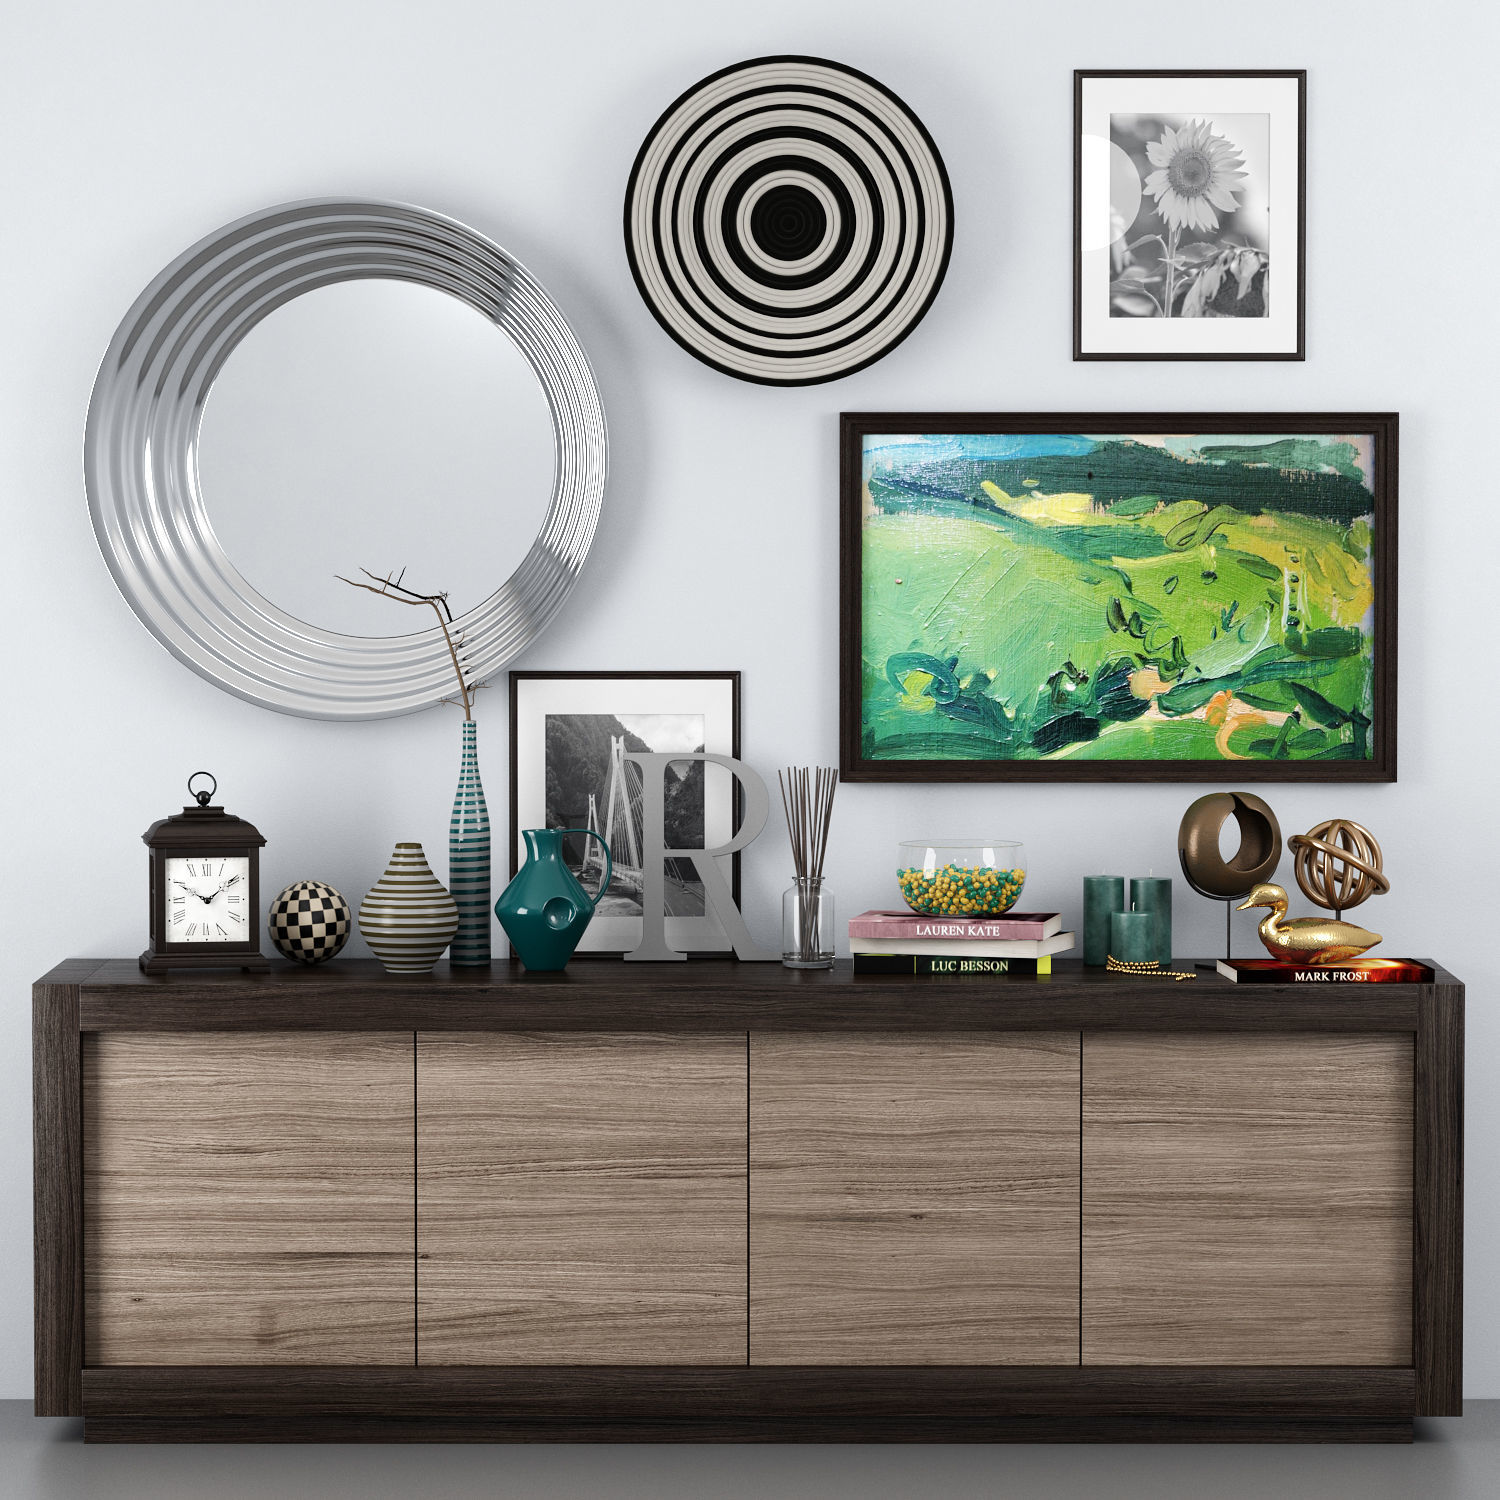 Picasso sideboard - Riflessi